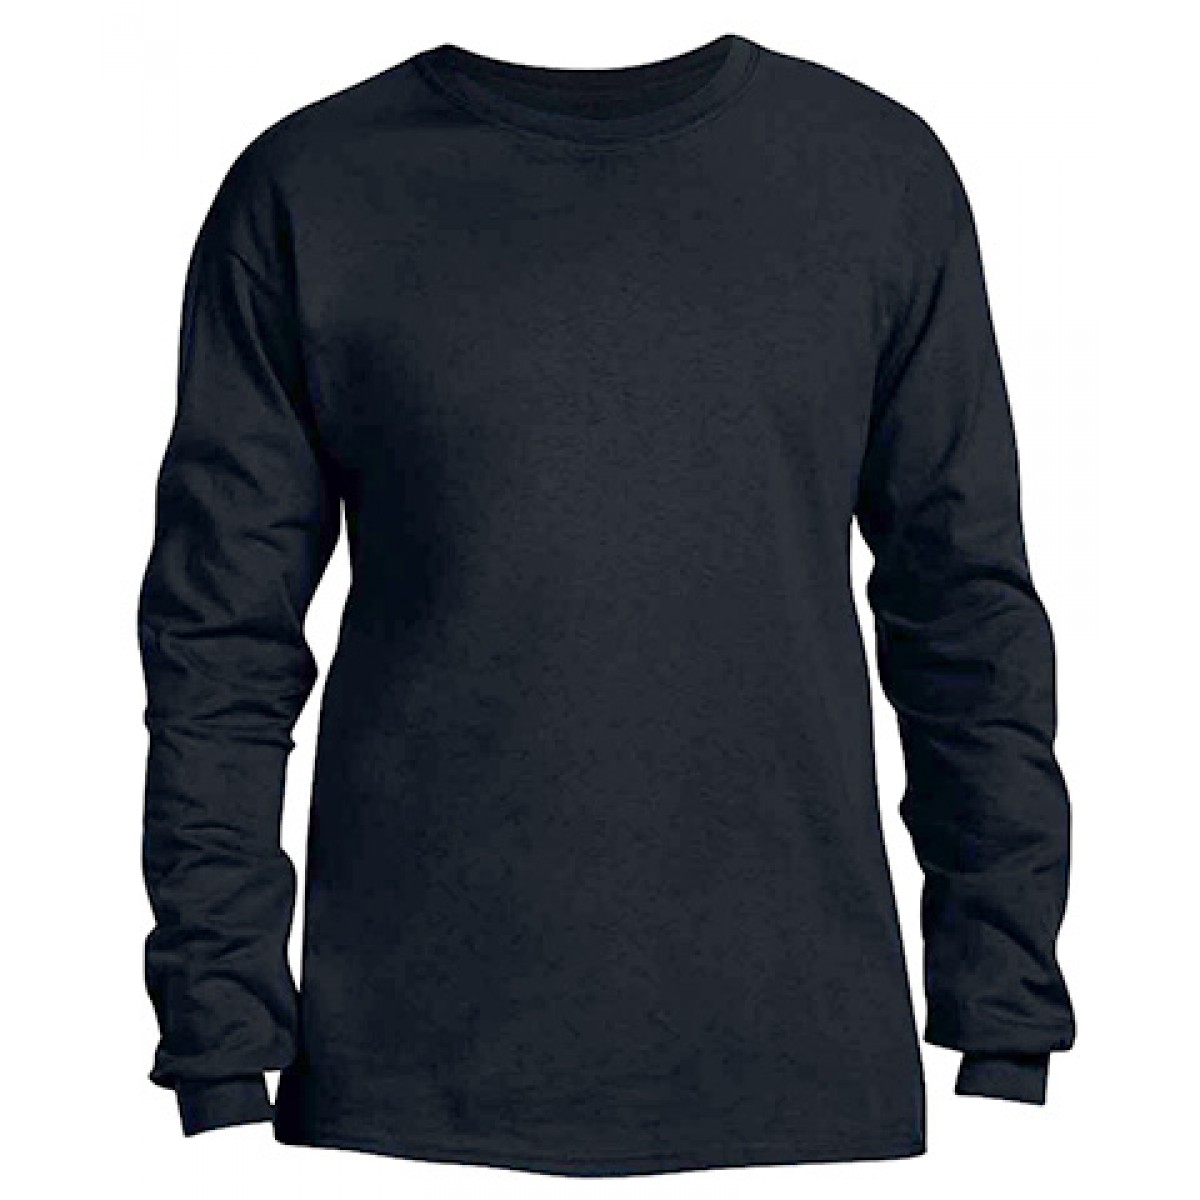 Heavy Cotton Long-Sleeve Adidas Shirt-Black-XS